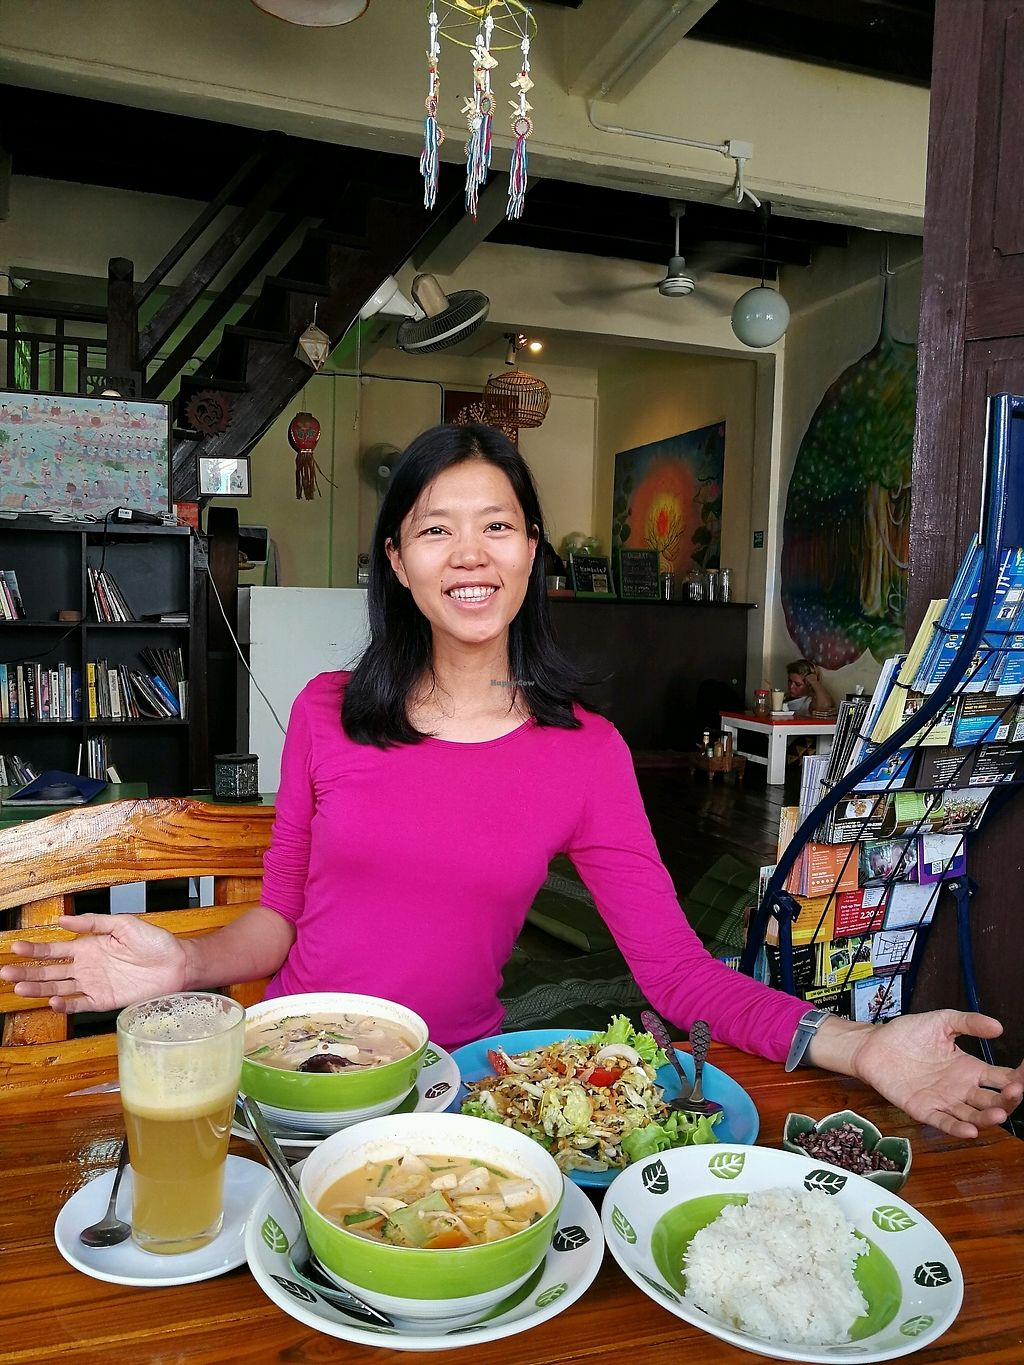 "Photo of Bodhi Tree Cafe 2  by <a href=""/members/profile/RawChefYin"">RawChefYin</a> <br/>loved the vegan food here!!!!!  <br/> January 26, 2018  - <a href='/contact/abuse/image/76071/351151'>Report</a>"